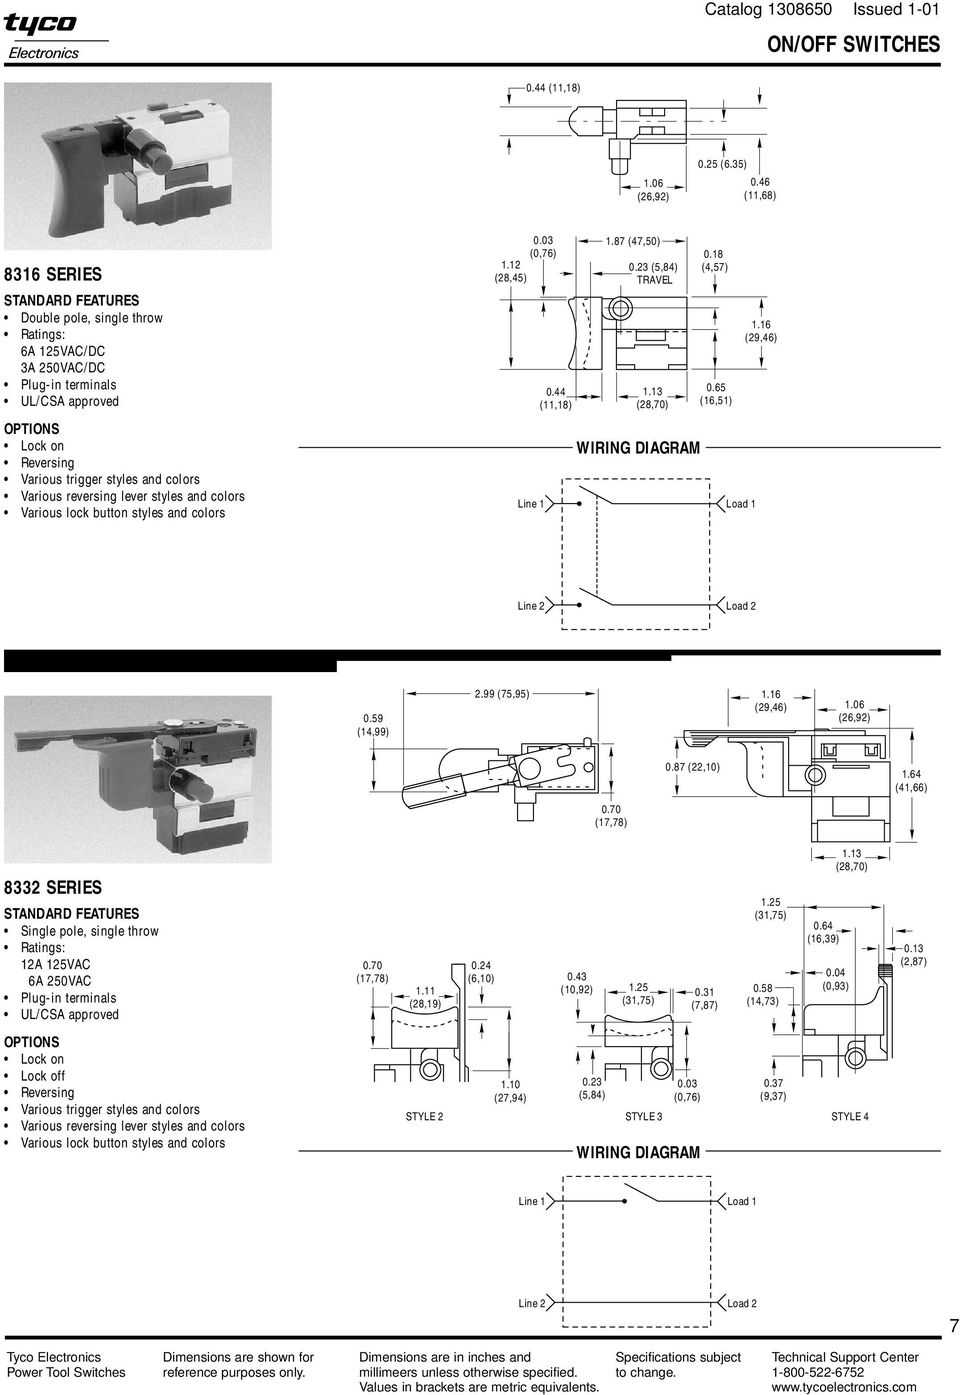 Power Tool Switches Catalog Issued Pdf Single Pole Double Throw Limit Switch Wiring Diagram 87 4750 023 584 Travel 113 28